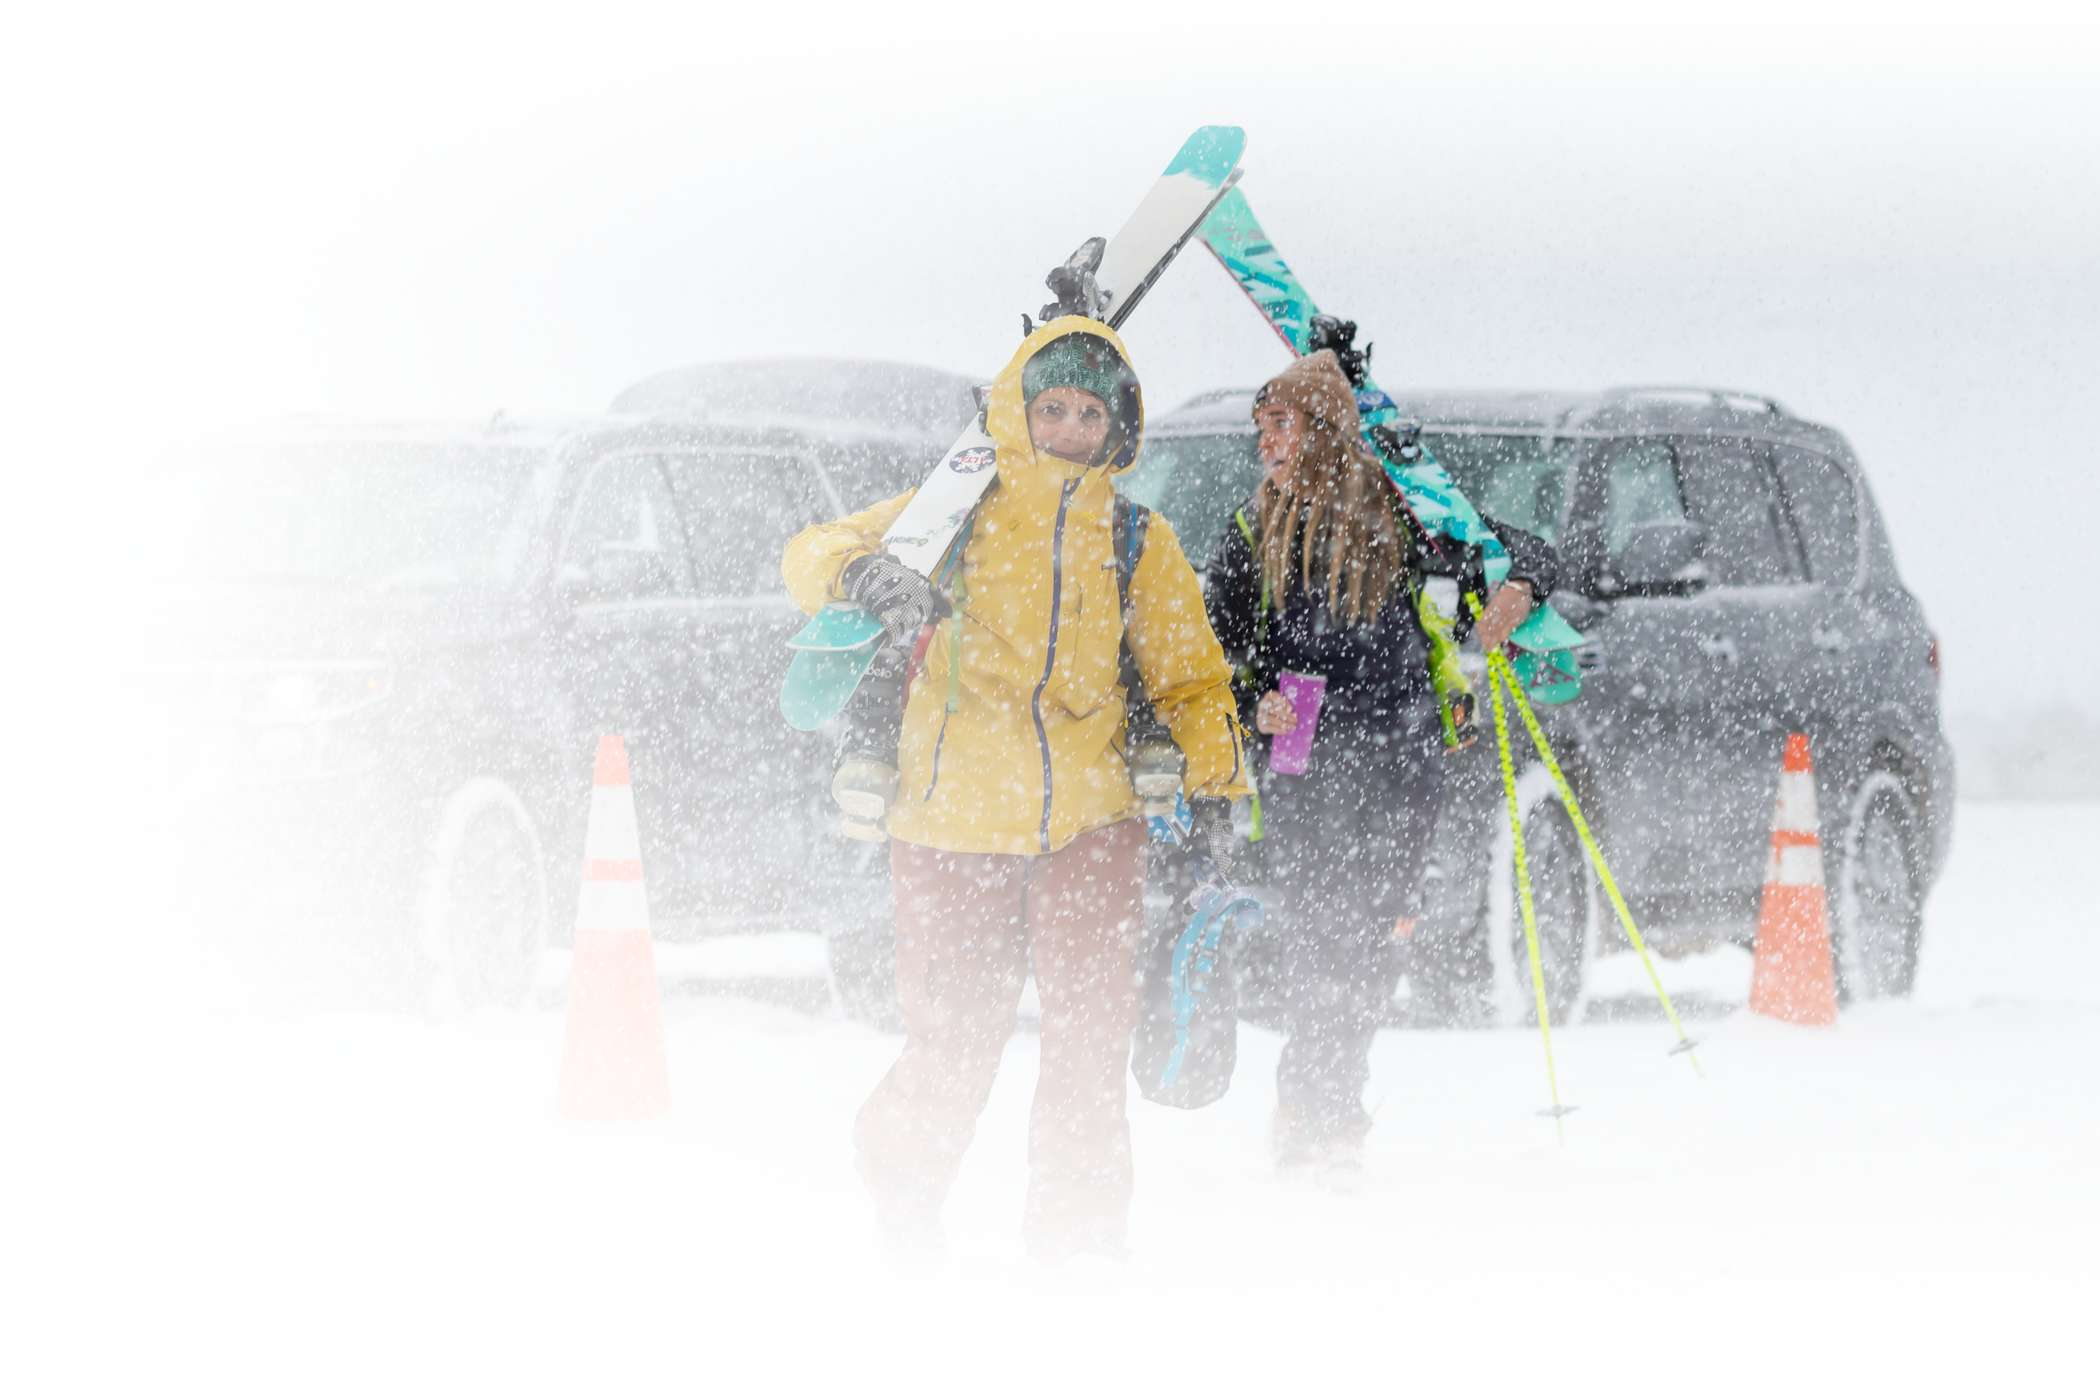 Skiers walk through the Wildcat parking lot on a snowy day at Alta Ski Area